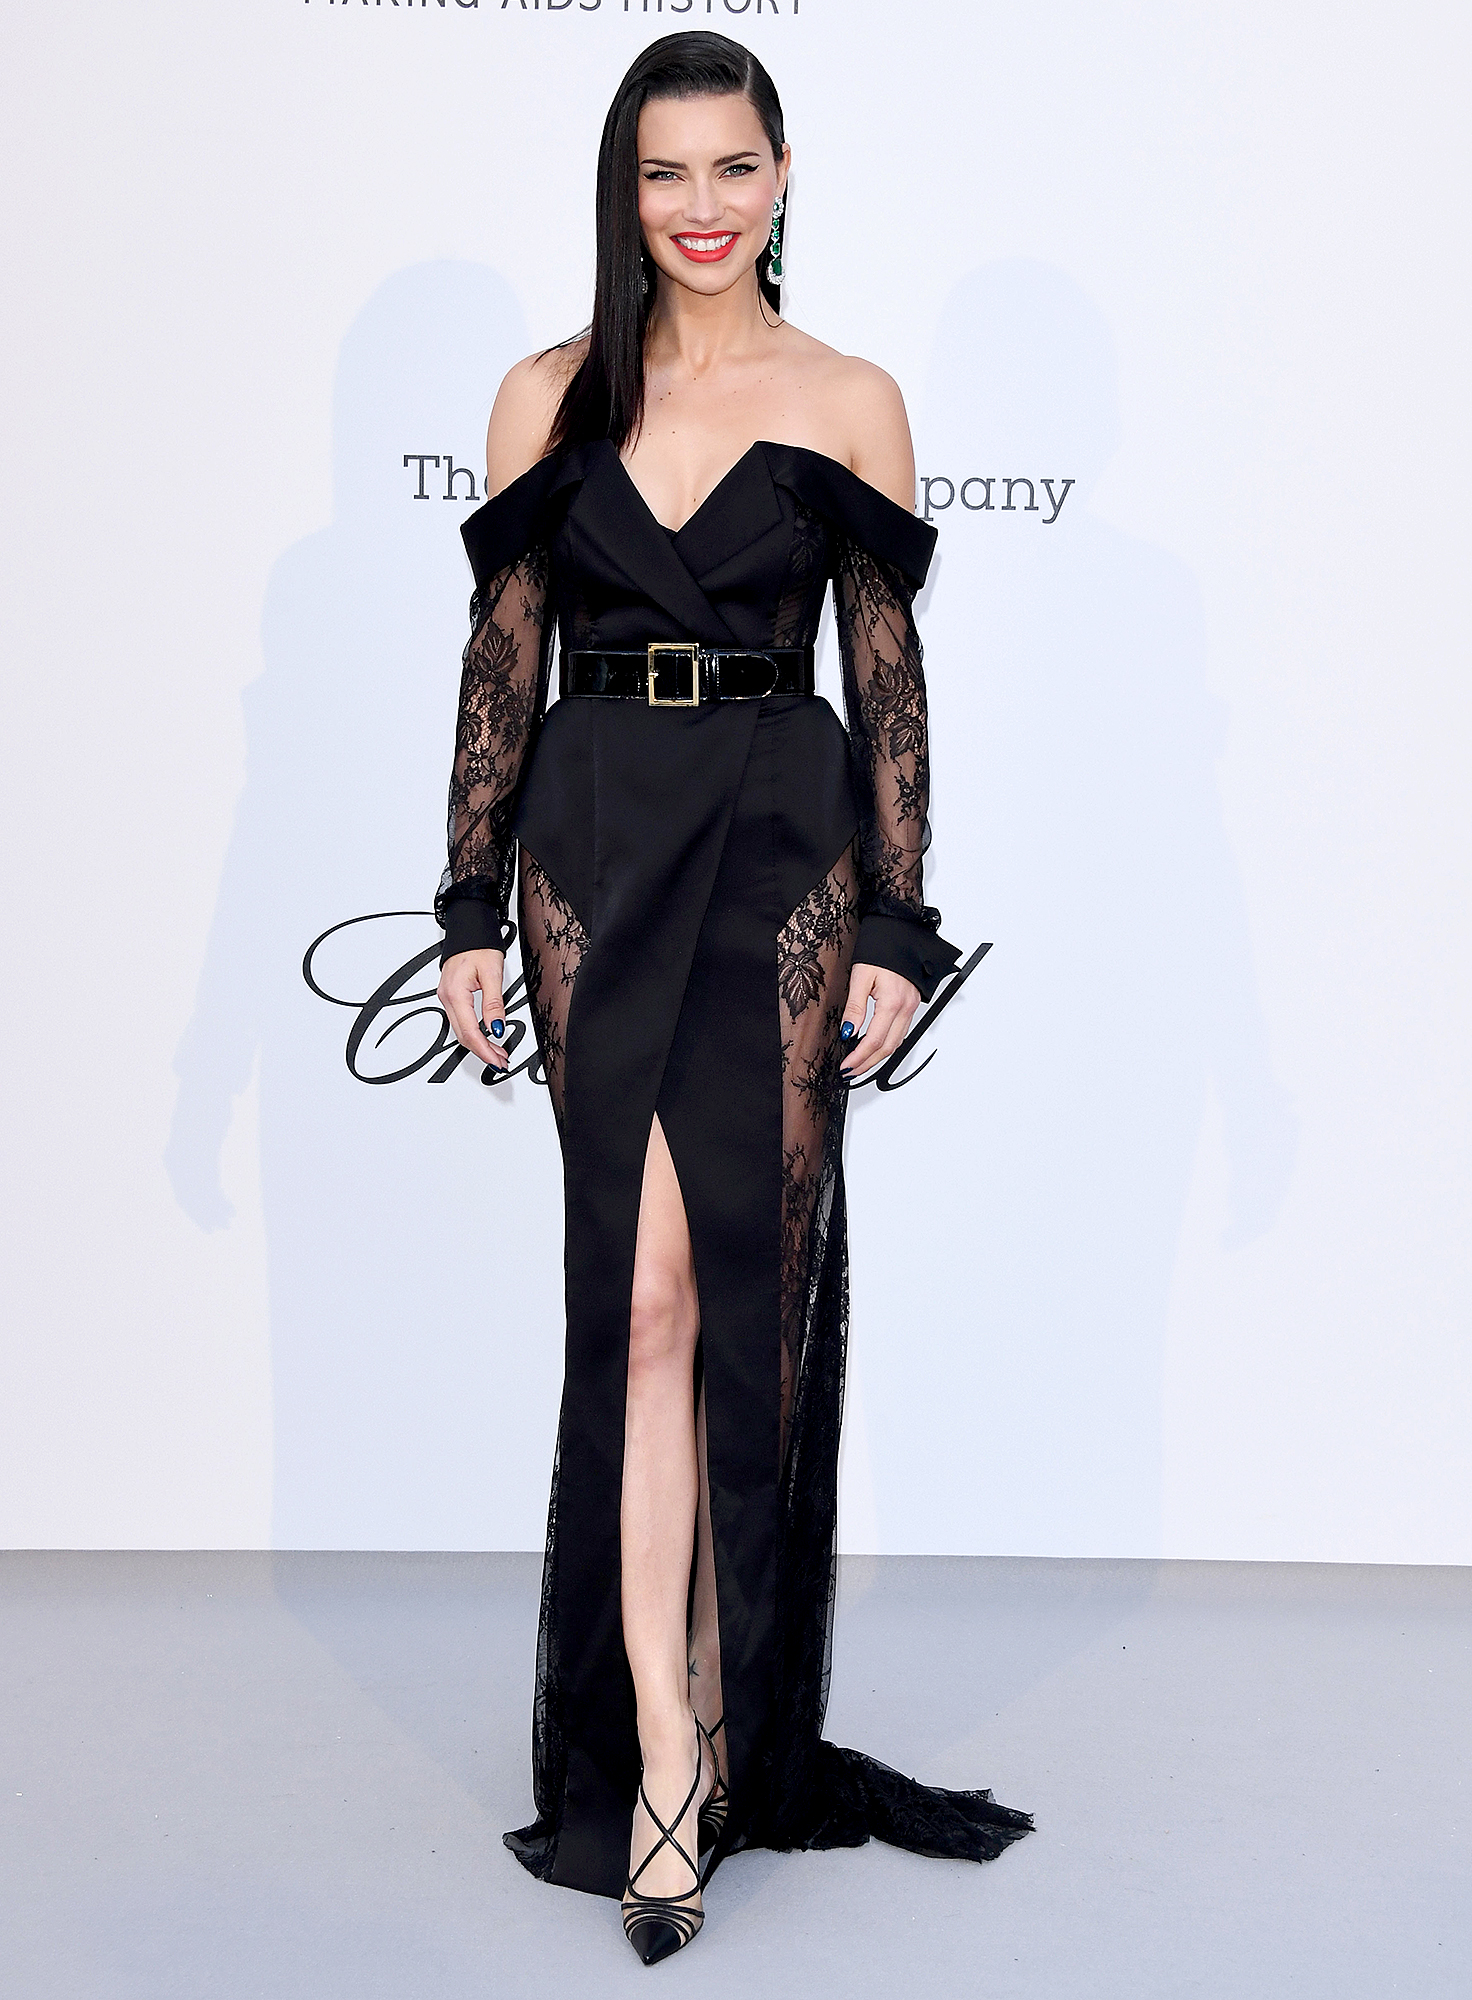 Adriana-Lima - The model was a lacy lady in her off-the-shoulder Ester Abner number at the amFAR Cannes Gala on Thursday, May 23.